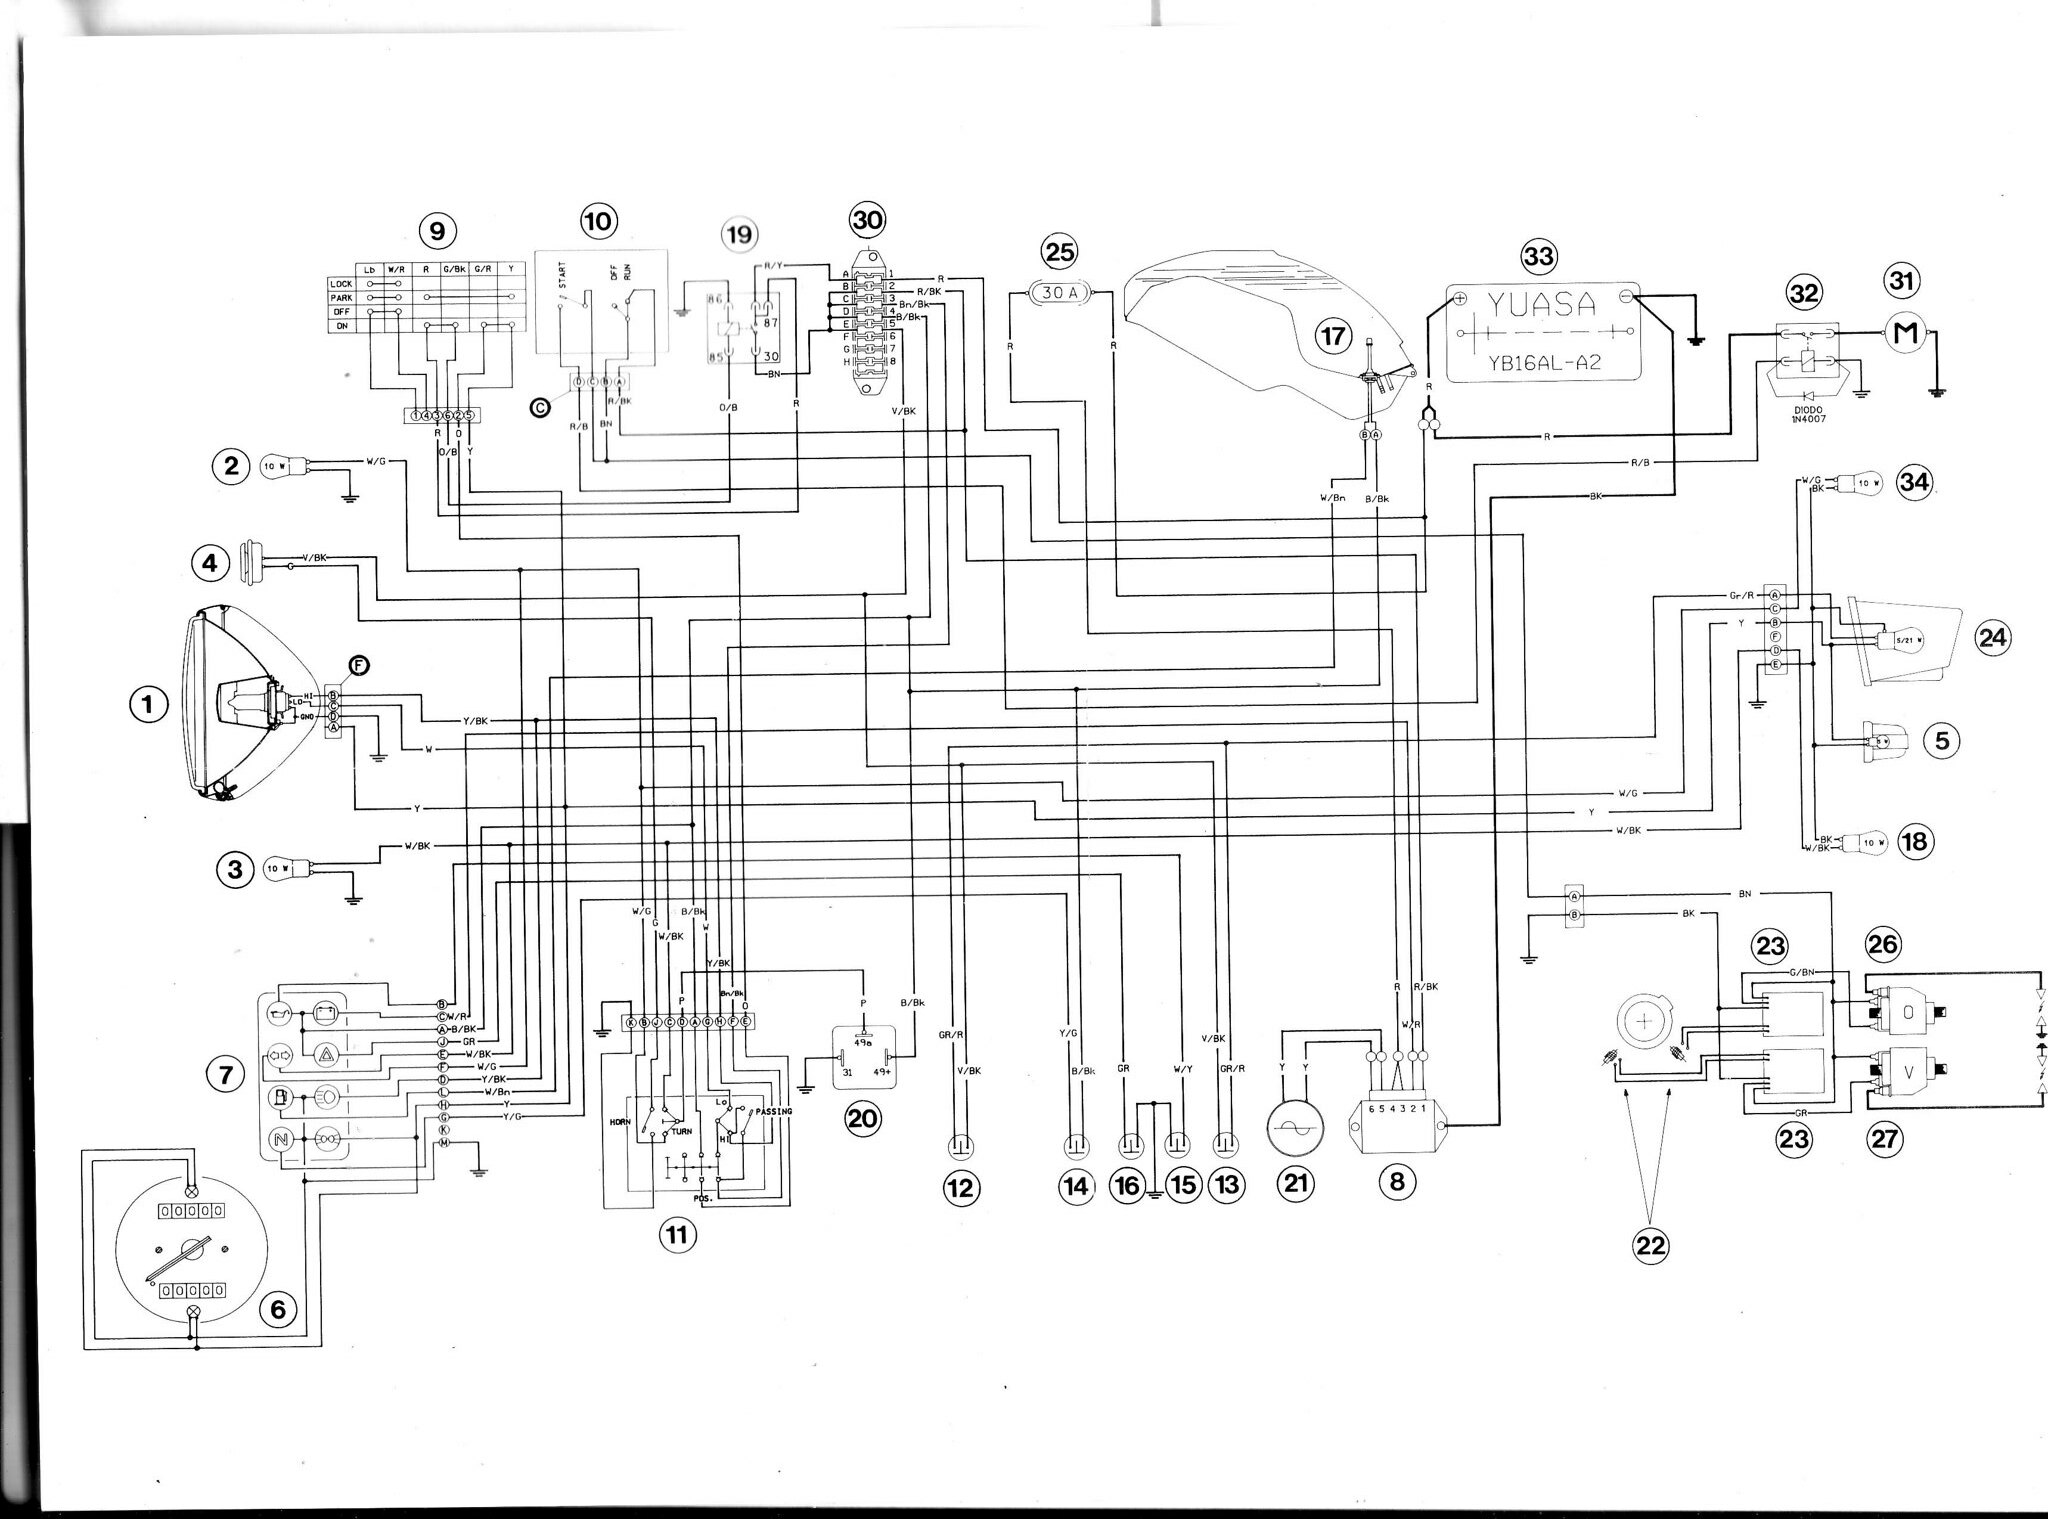 If4 Wiring Diagram Pictures To Pin